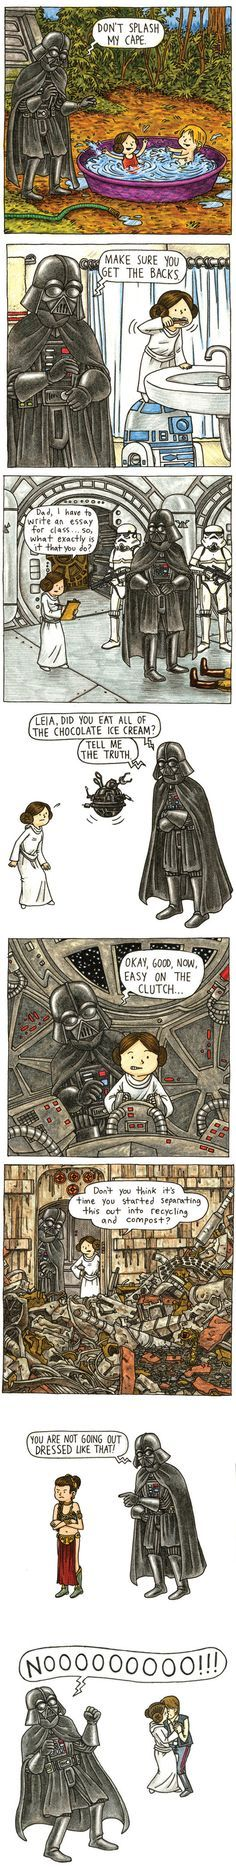 As a Dad, I totally get this. Vader's Little Princess